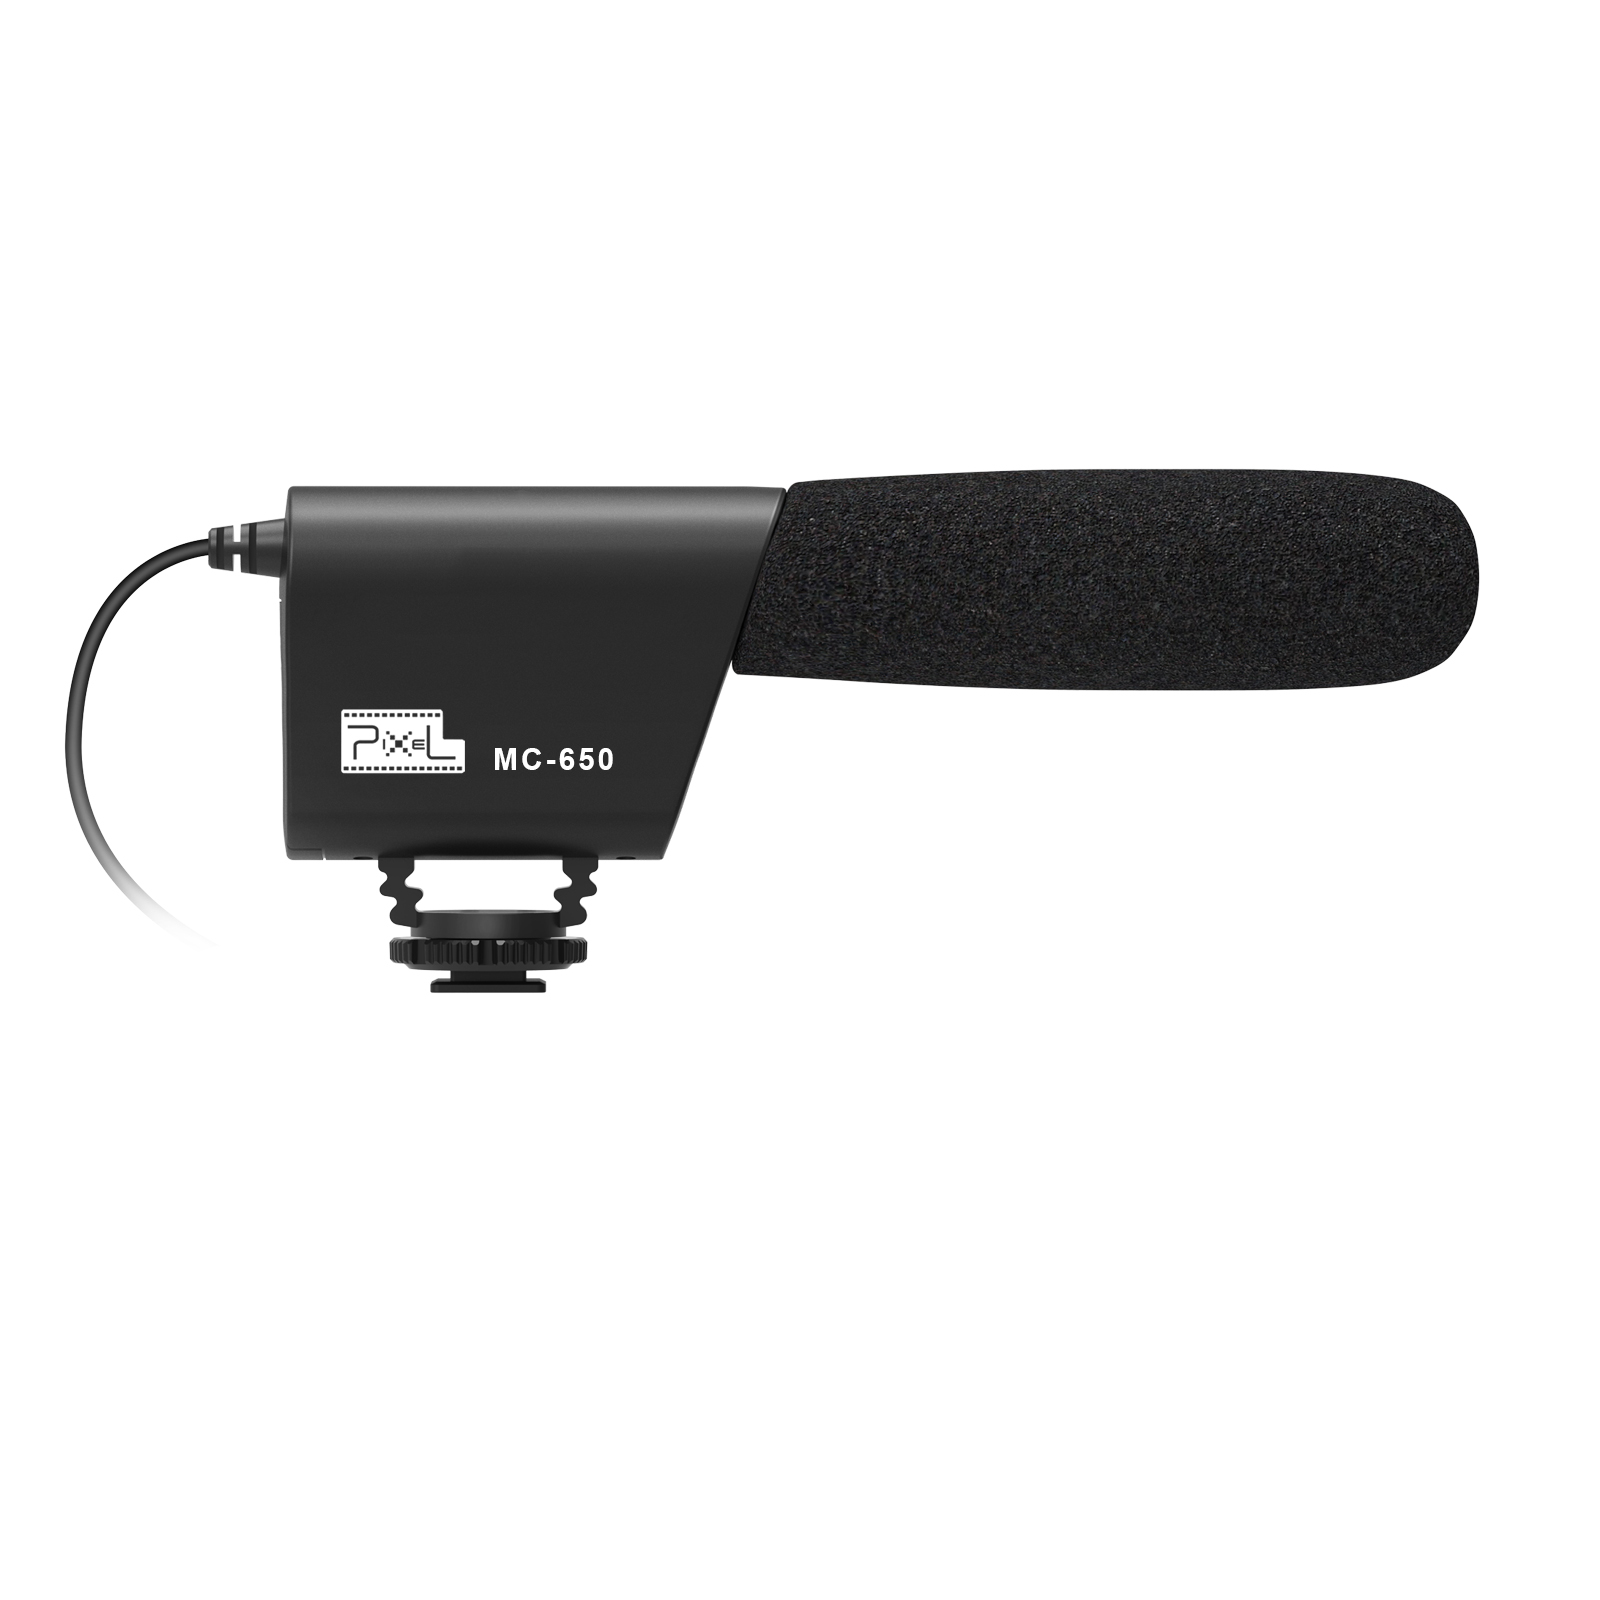 Pixel MC-650 Microphone, intelligent noise reduction and comprehensive radio